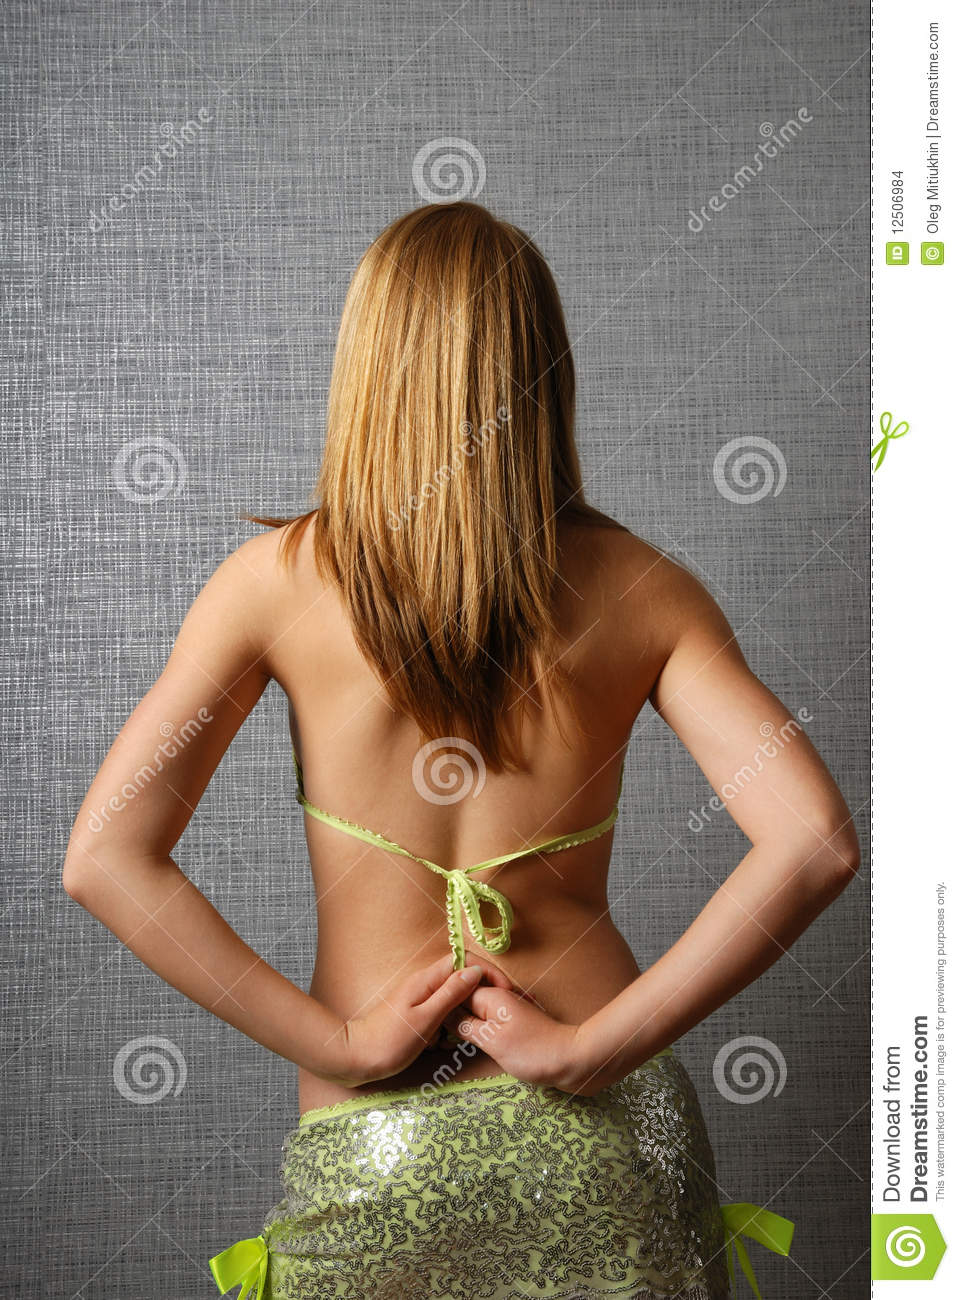 rear view of blonde undressing stock photo - image of maidenly